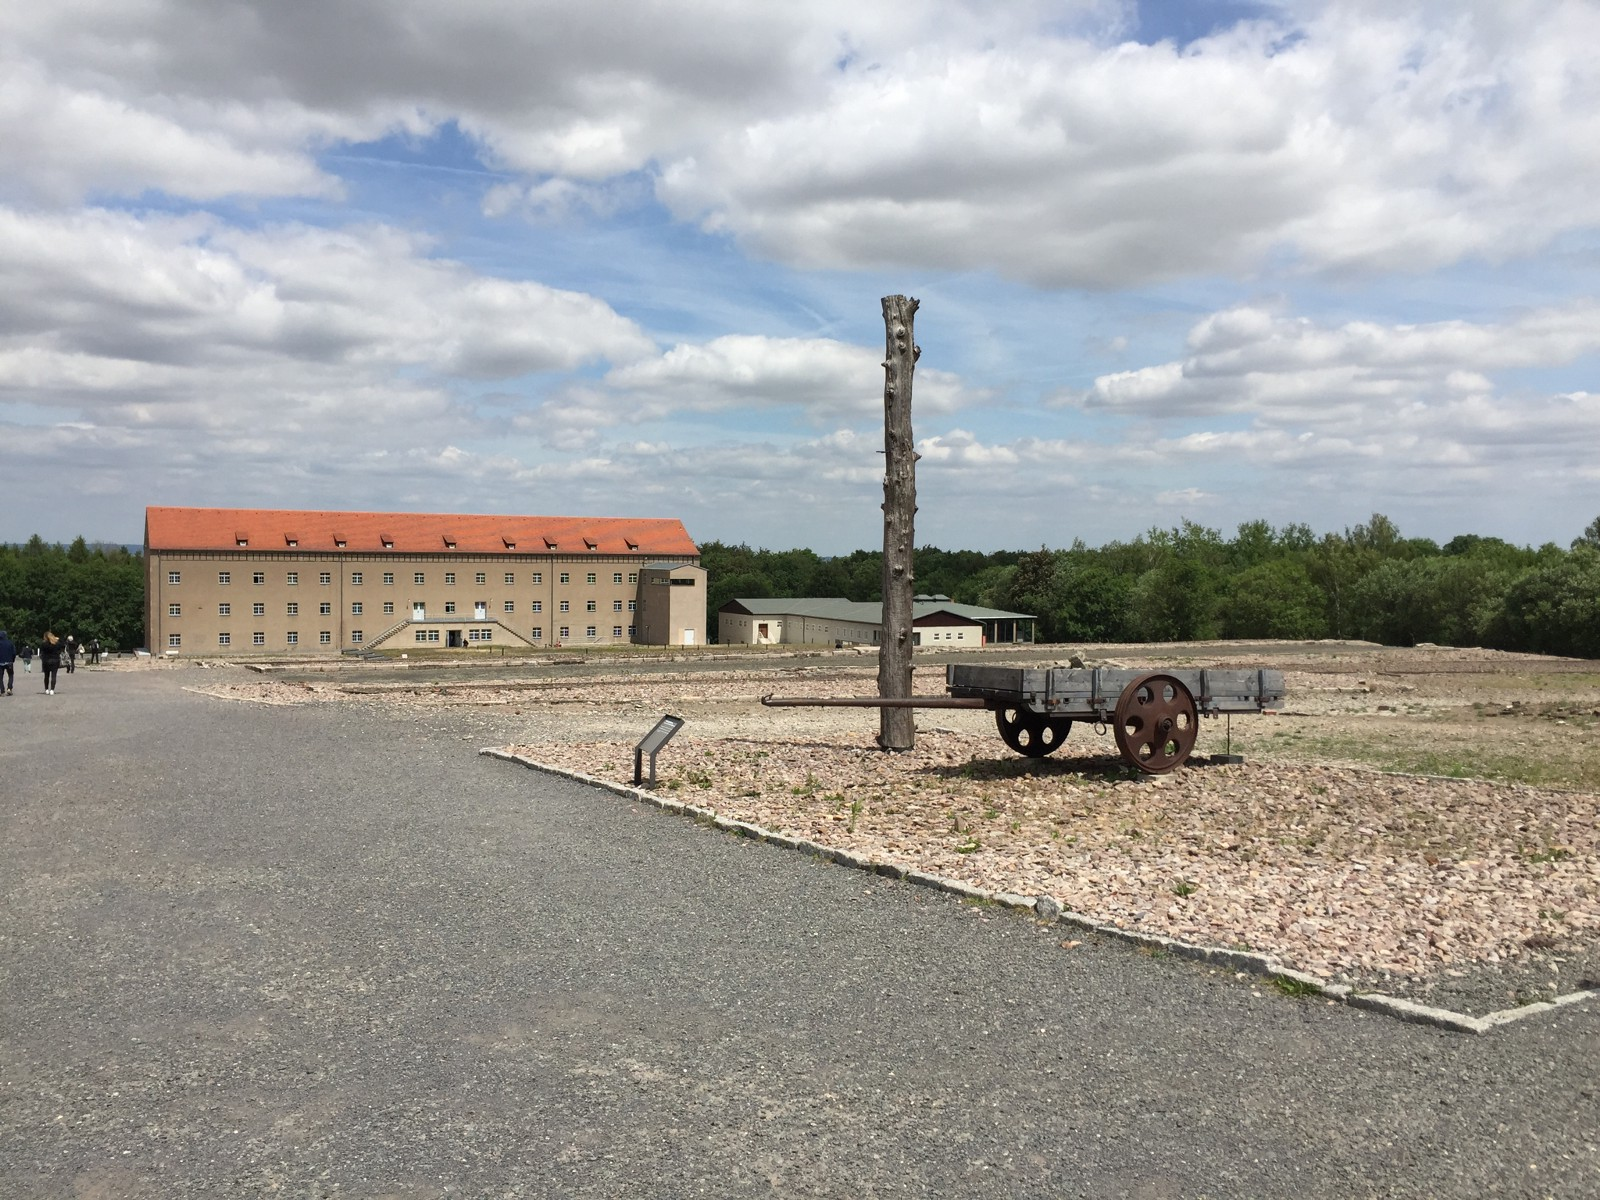 Working area and some of the living quarters of Buchenwald